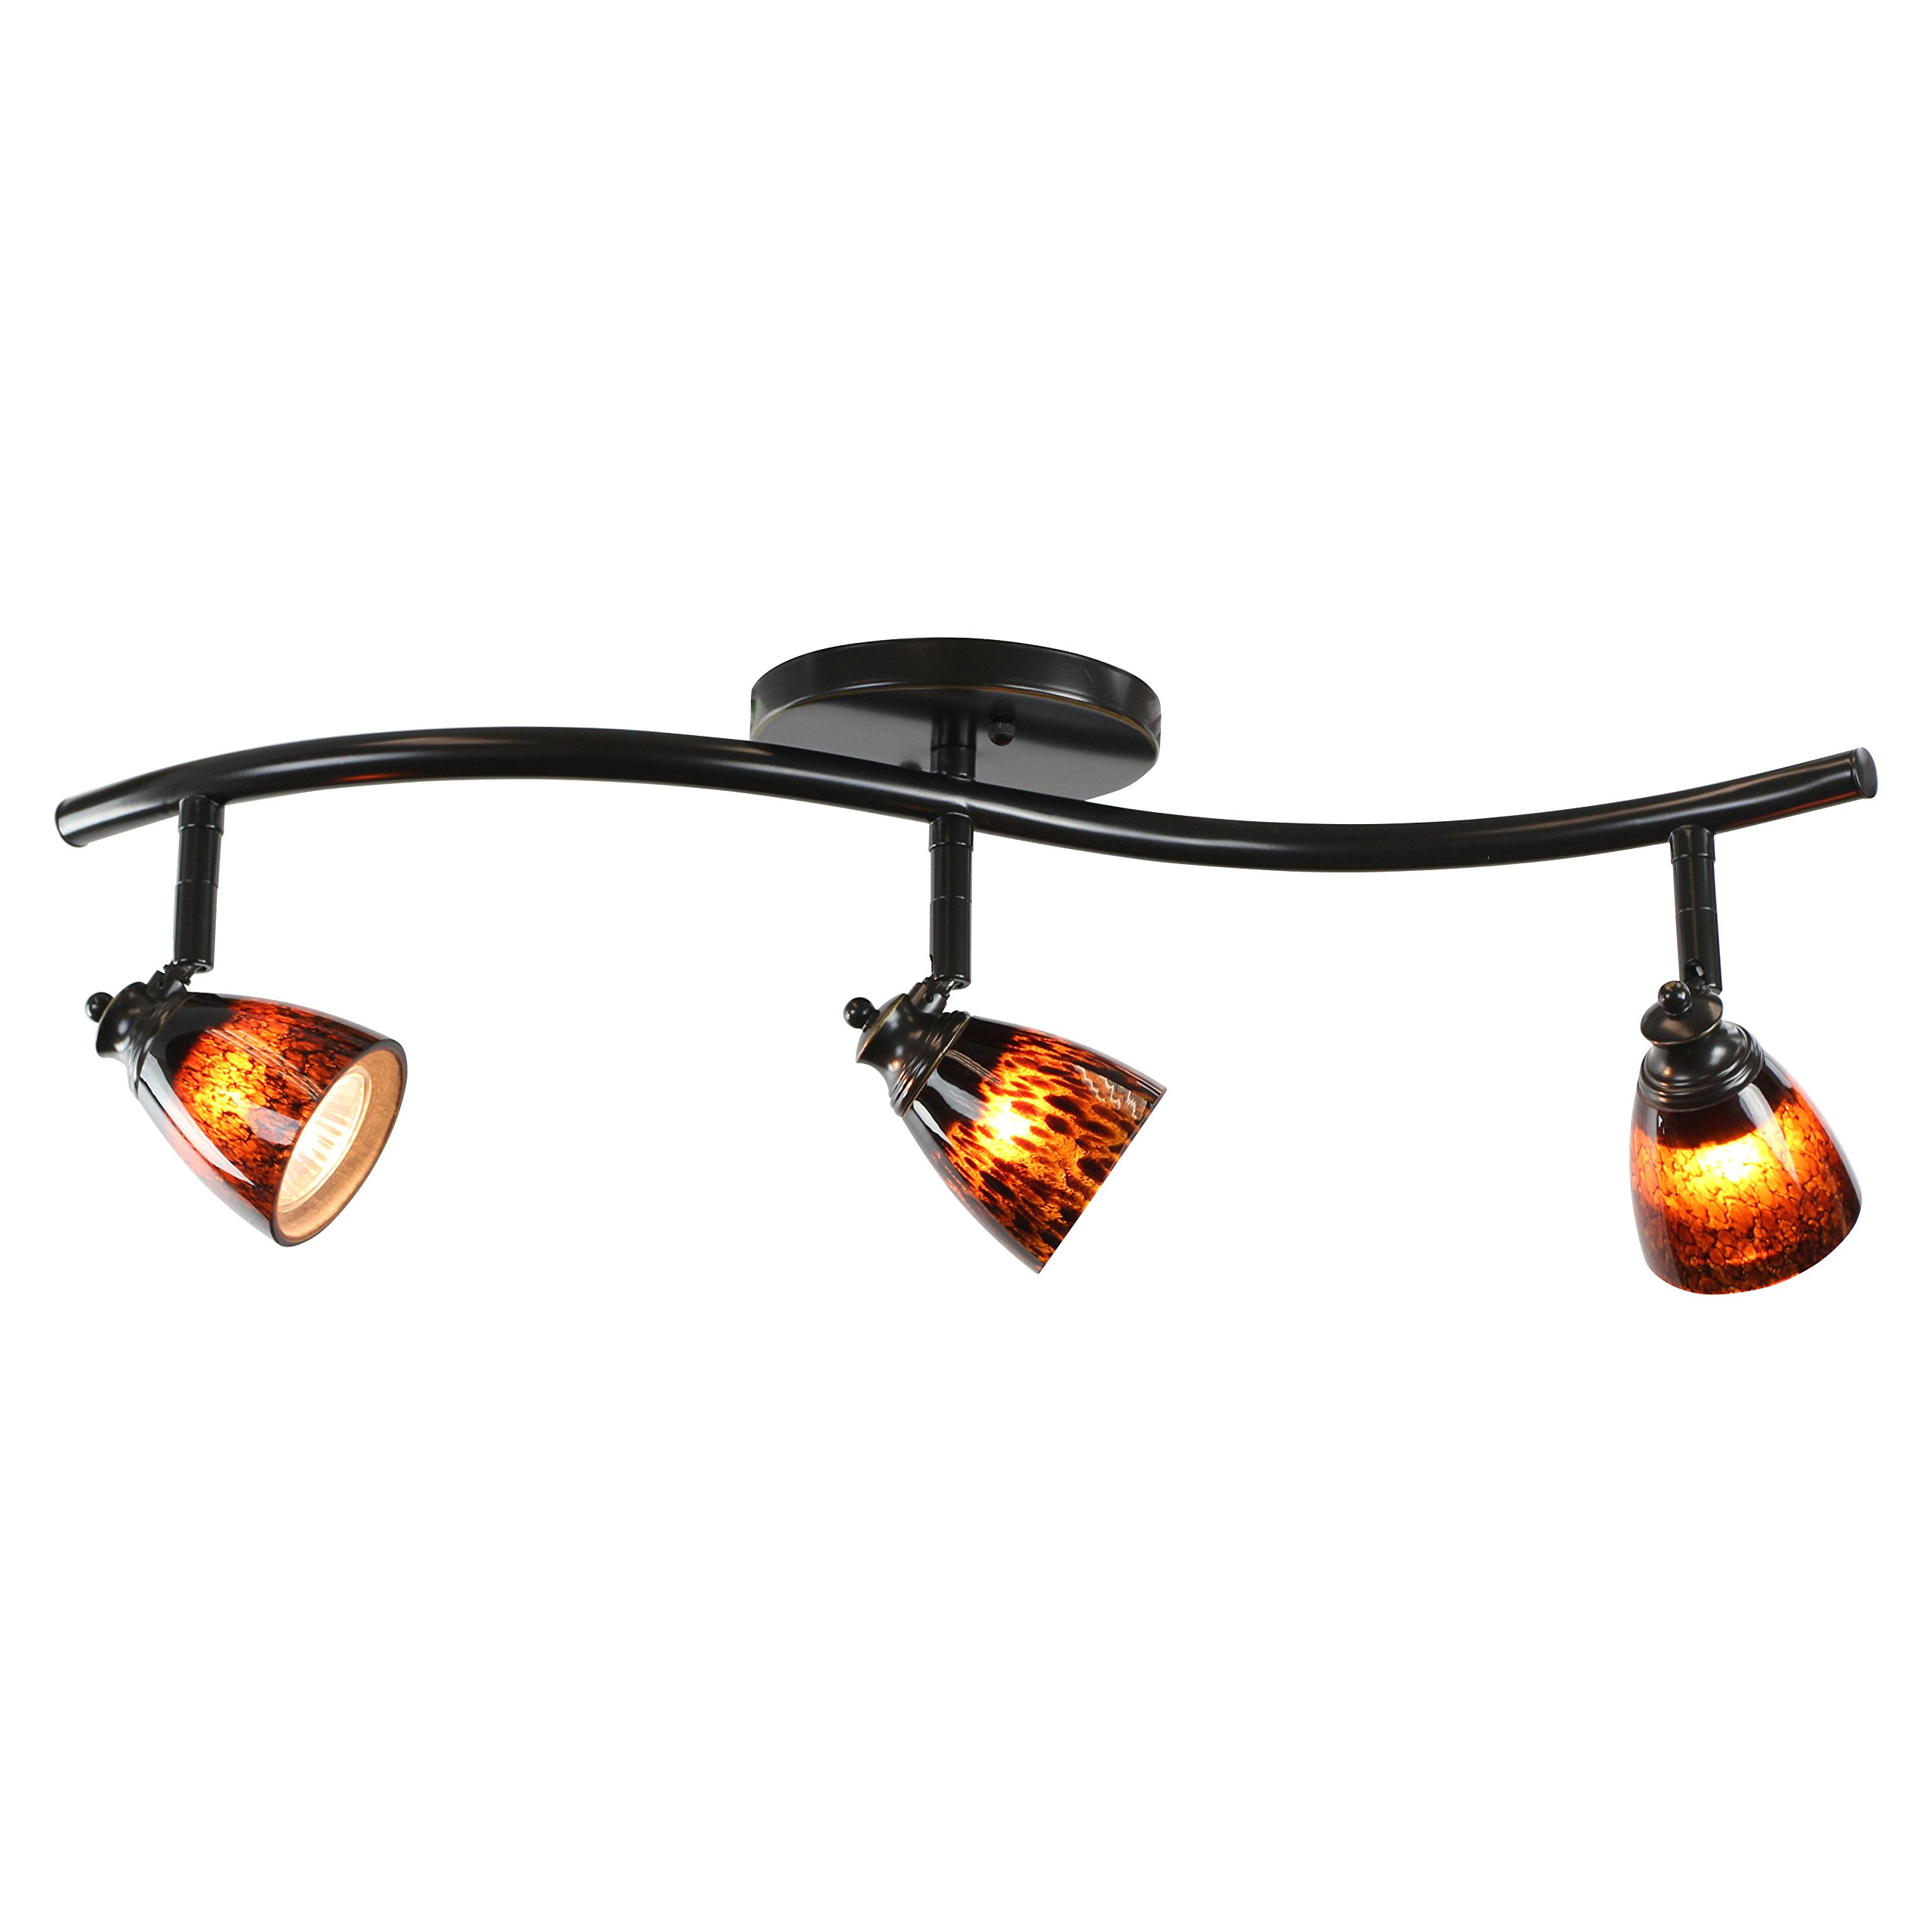 Direct-Lighting 3 Lights Adjustable Track Lighting Kit - Dark Bronze Finish - Brown Glass Track Heads - GU10 Bulbs Included. D268-23C-DB-BRNS by Direct-Lighting